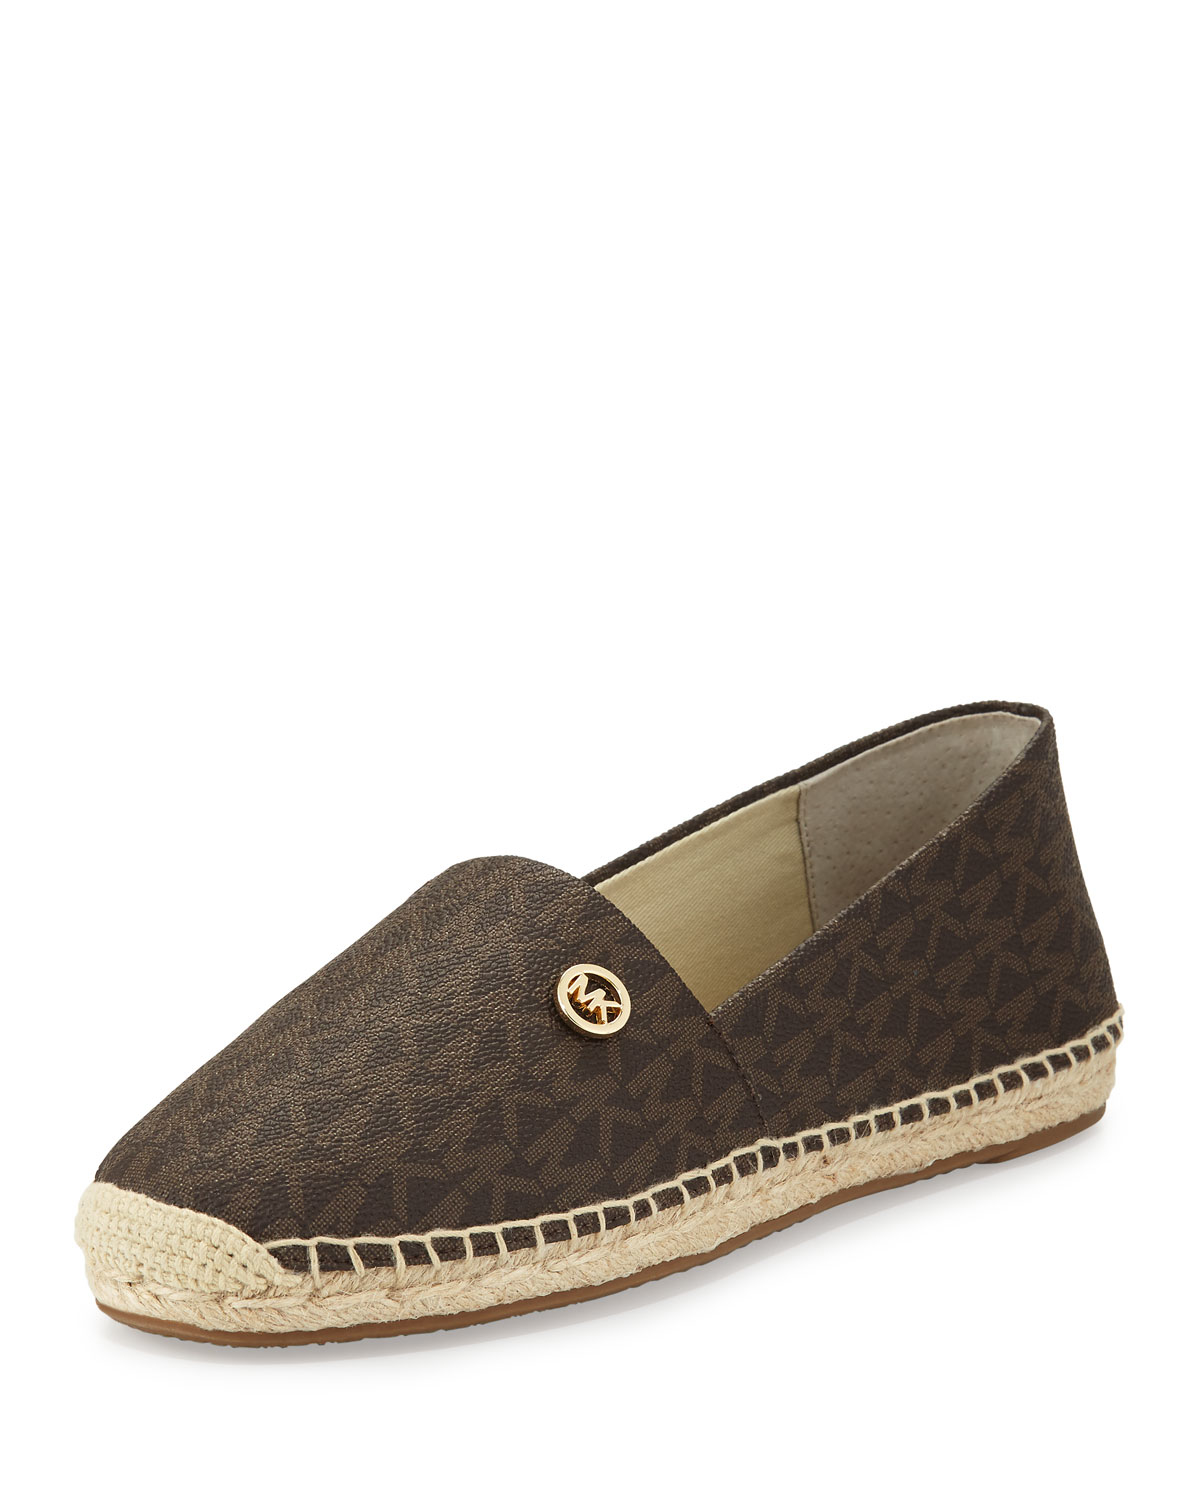 michael michael kors kendrick logo print espadrille flat in brown lyst. Black Bedroom Furniture Sets. Home Design Ideas